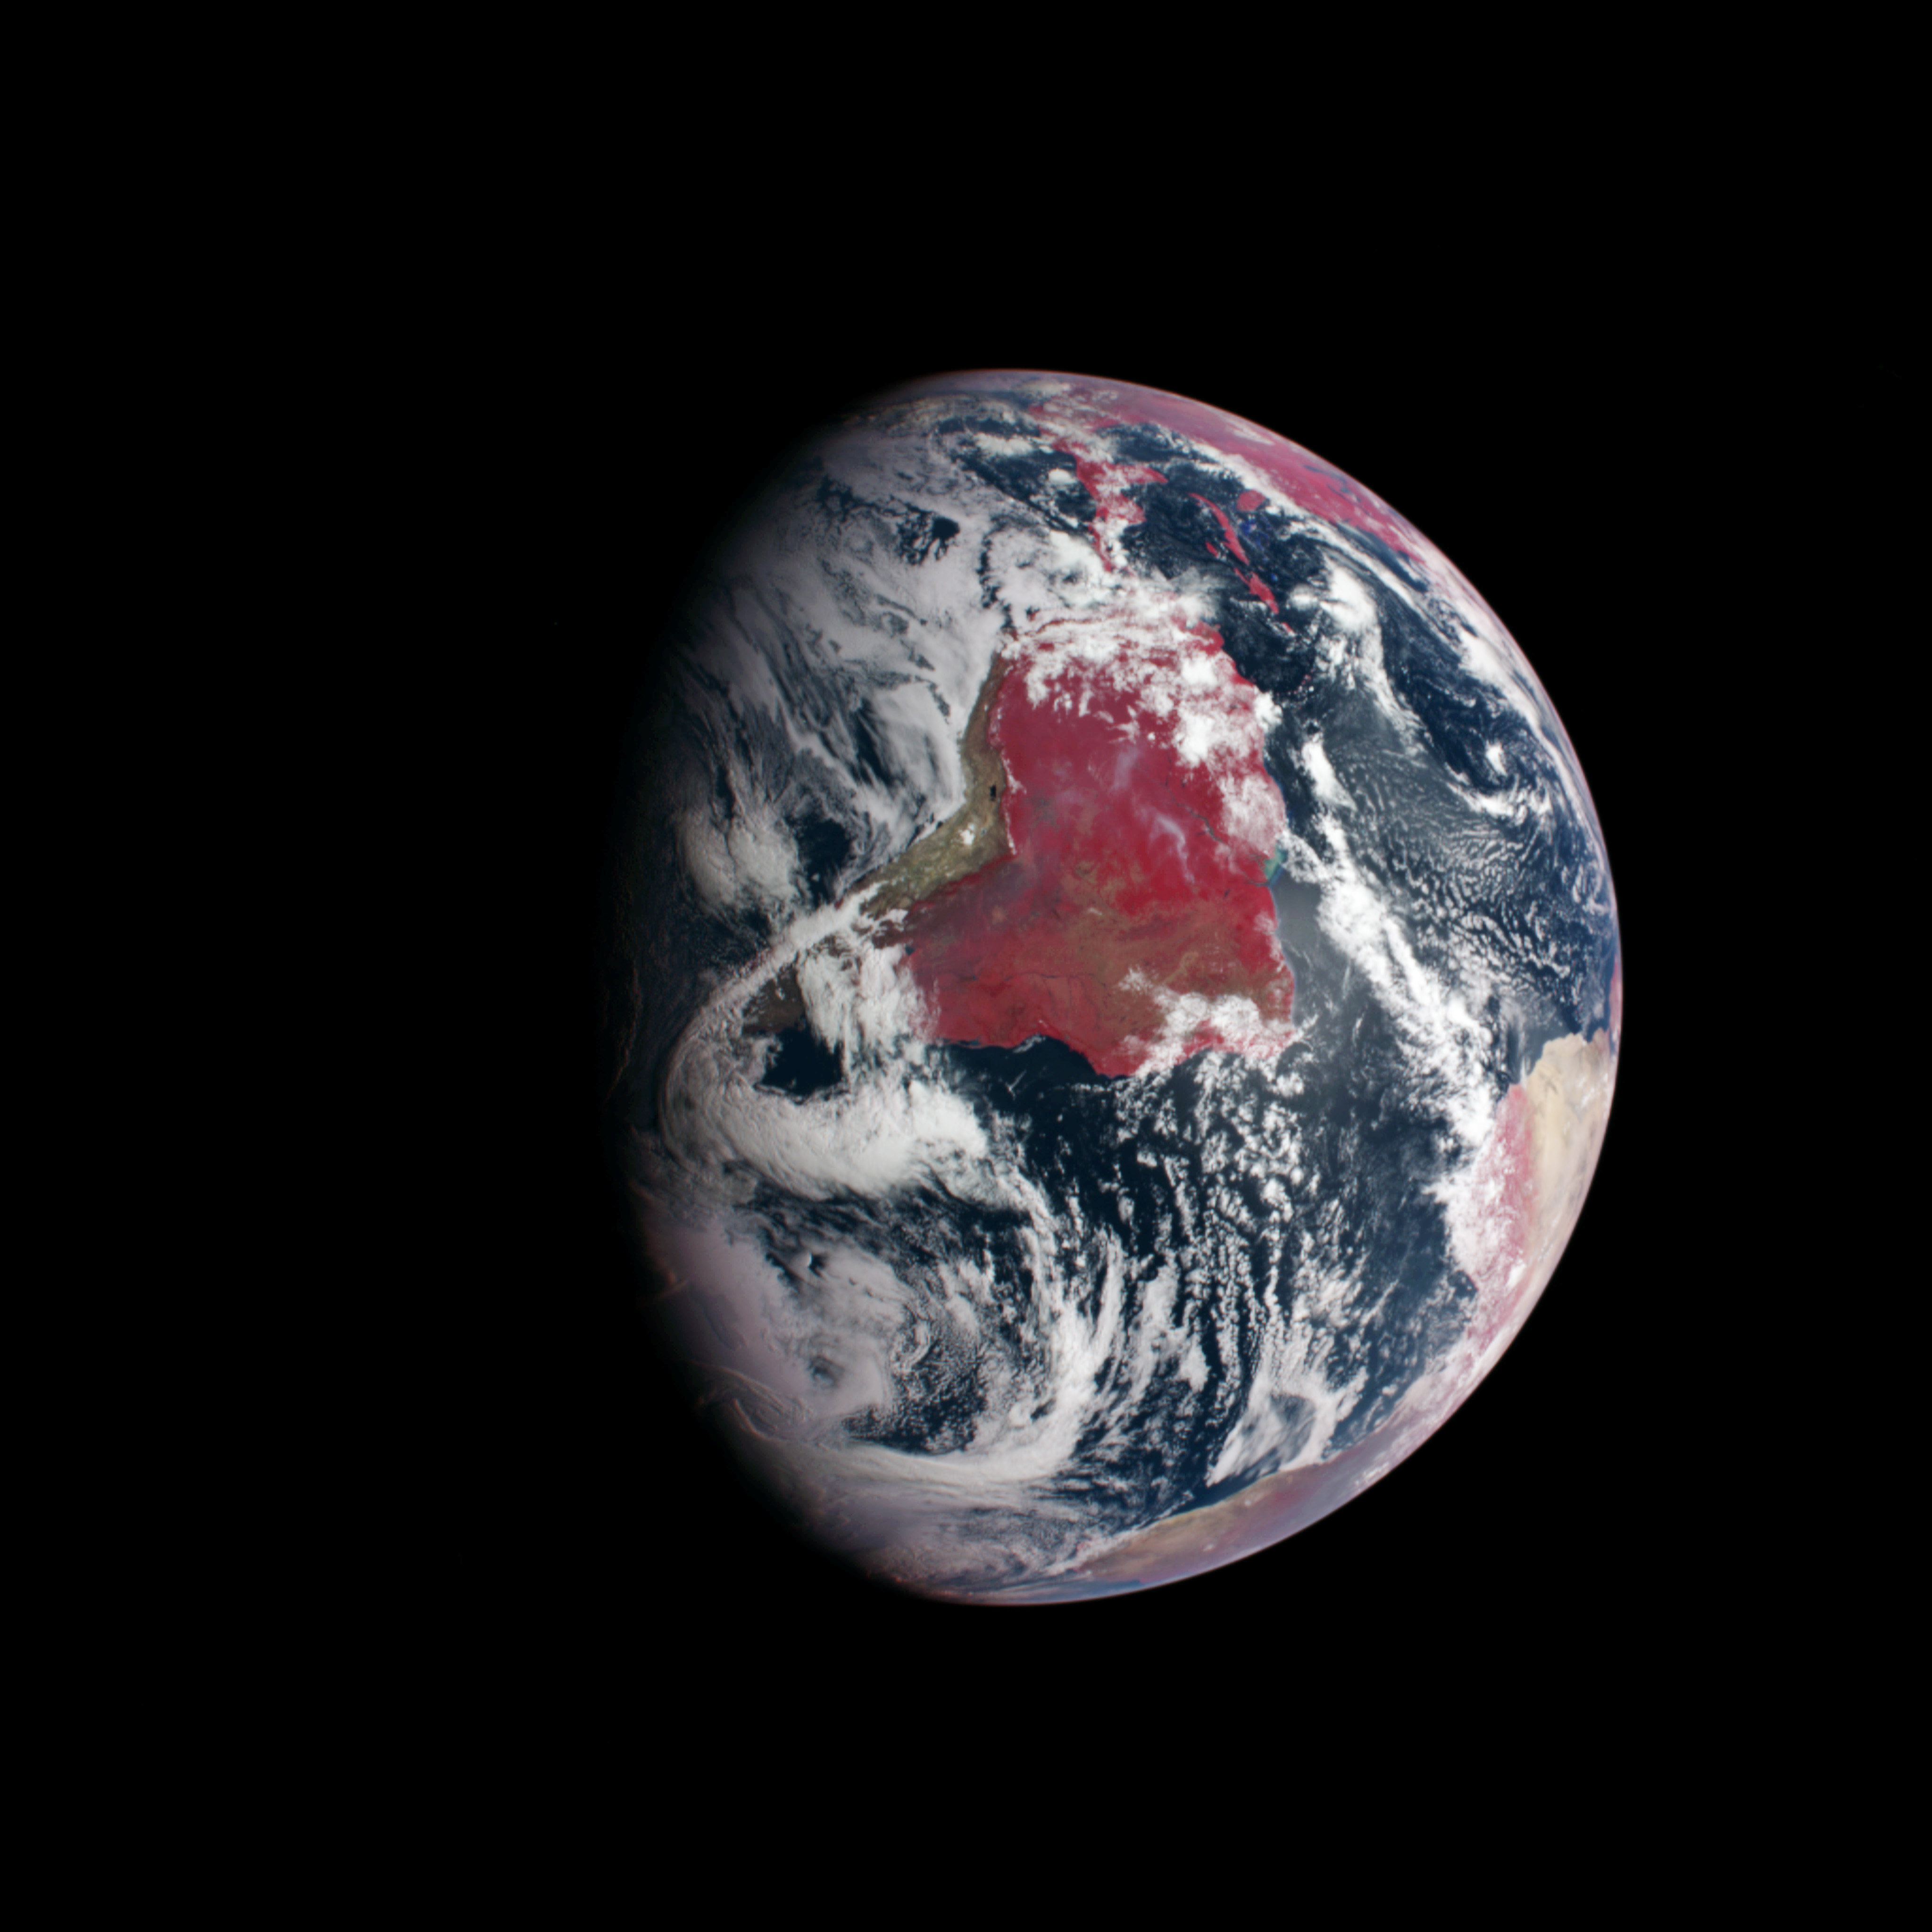 A view of earth from MESSENGER's Dual Imaging System. The wide-angle camera records light at eleven different wavelengths, including visible and infrared light. The image above substitutes infrared light for blue light